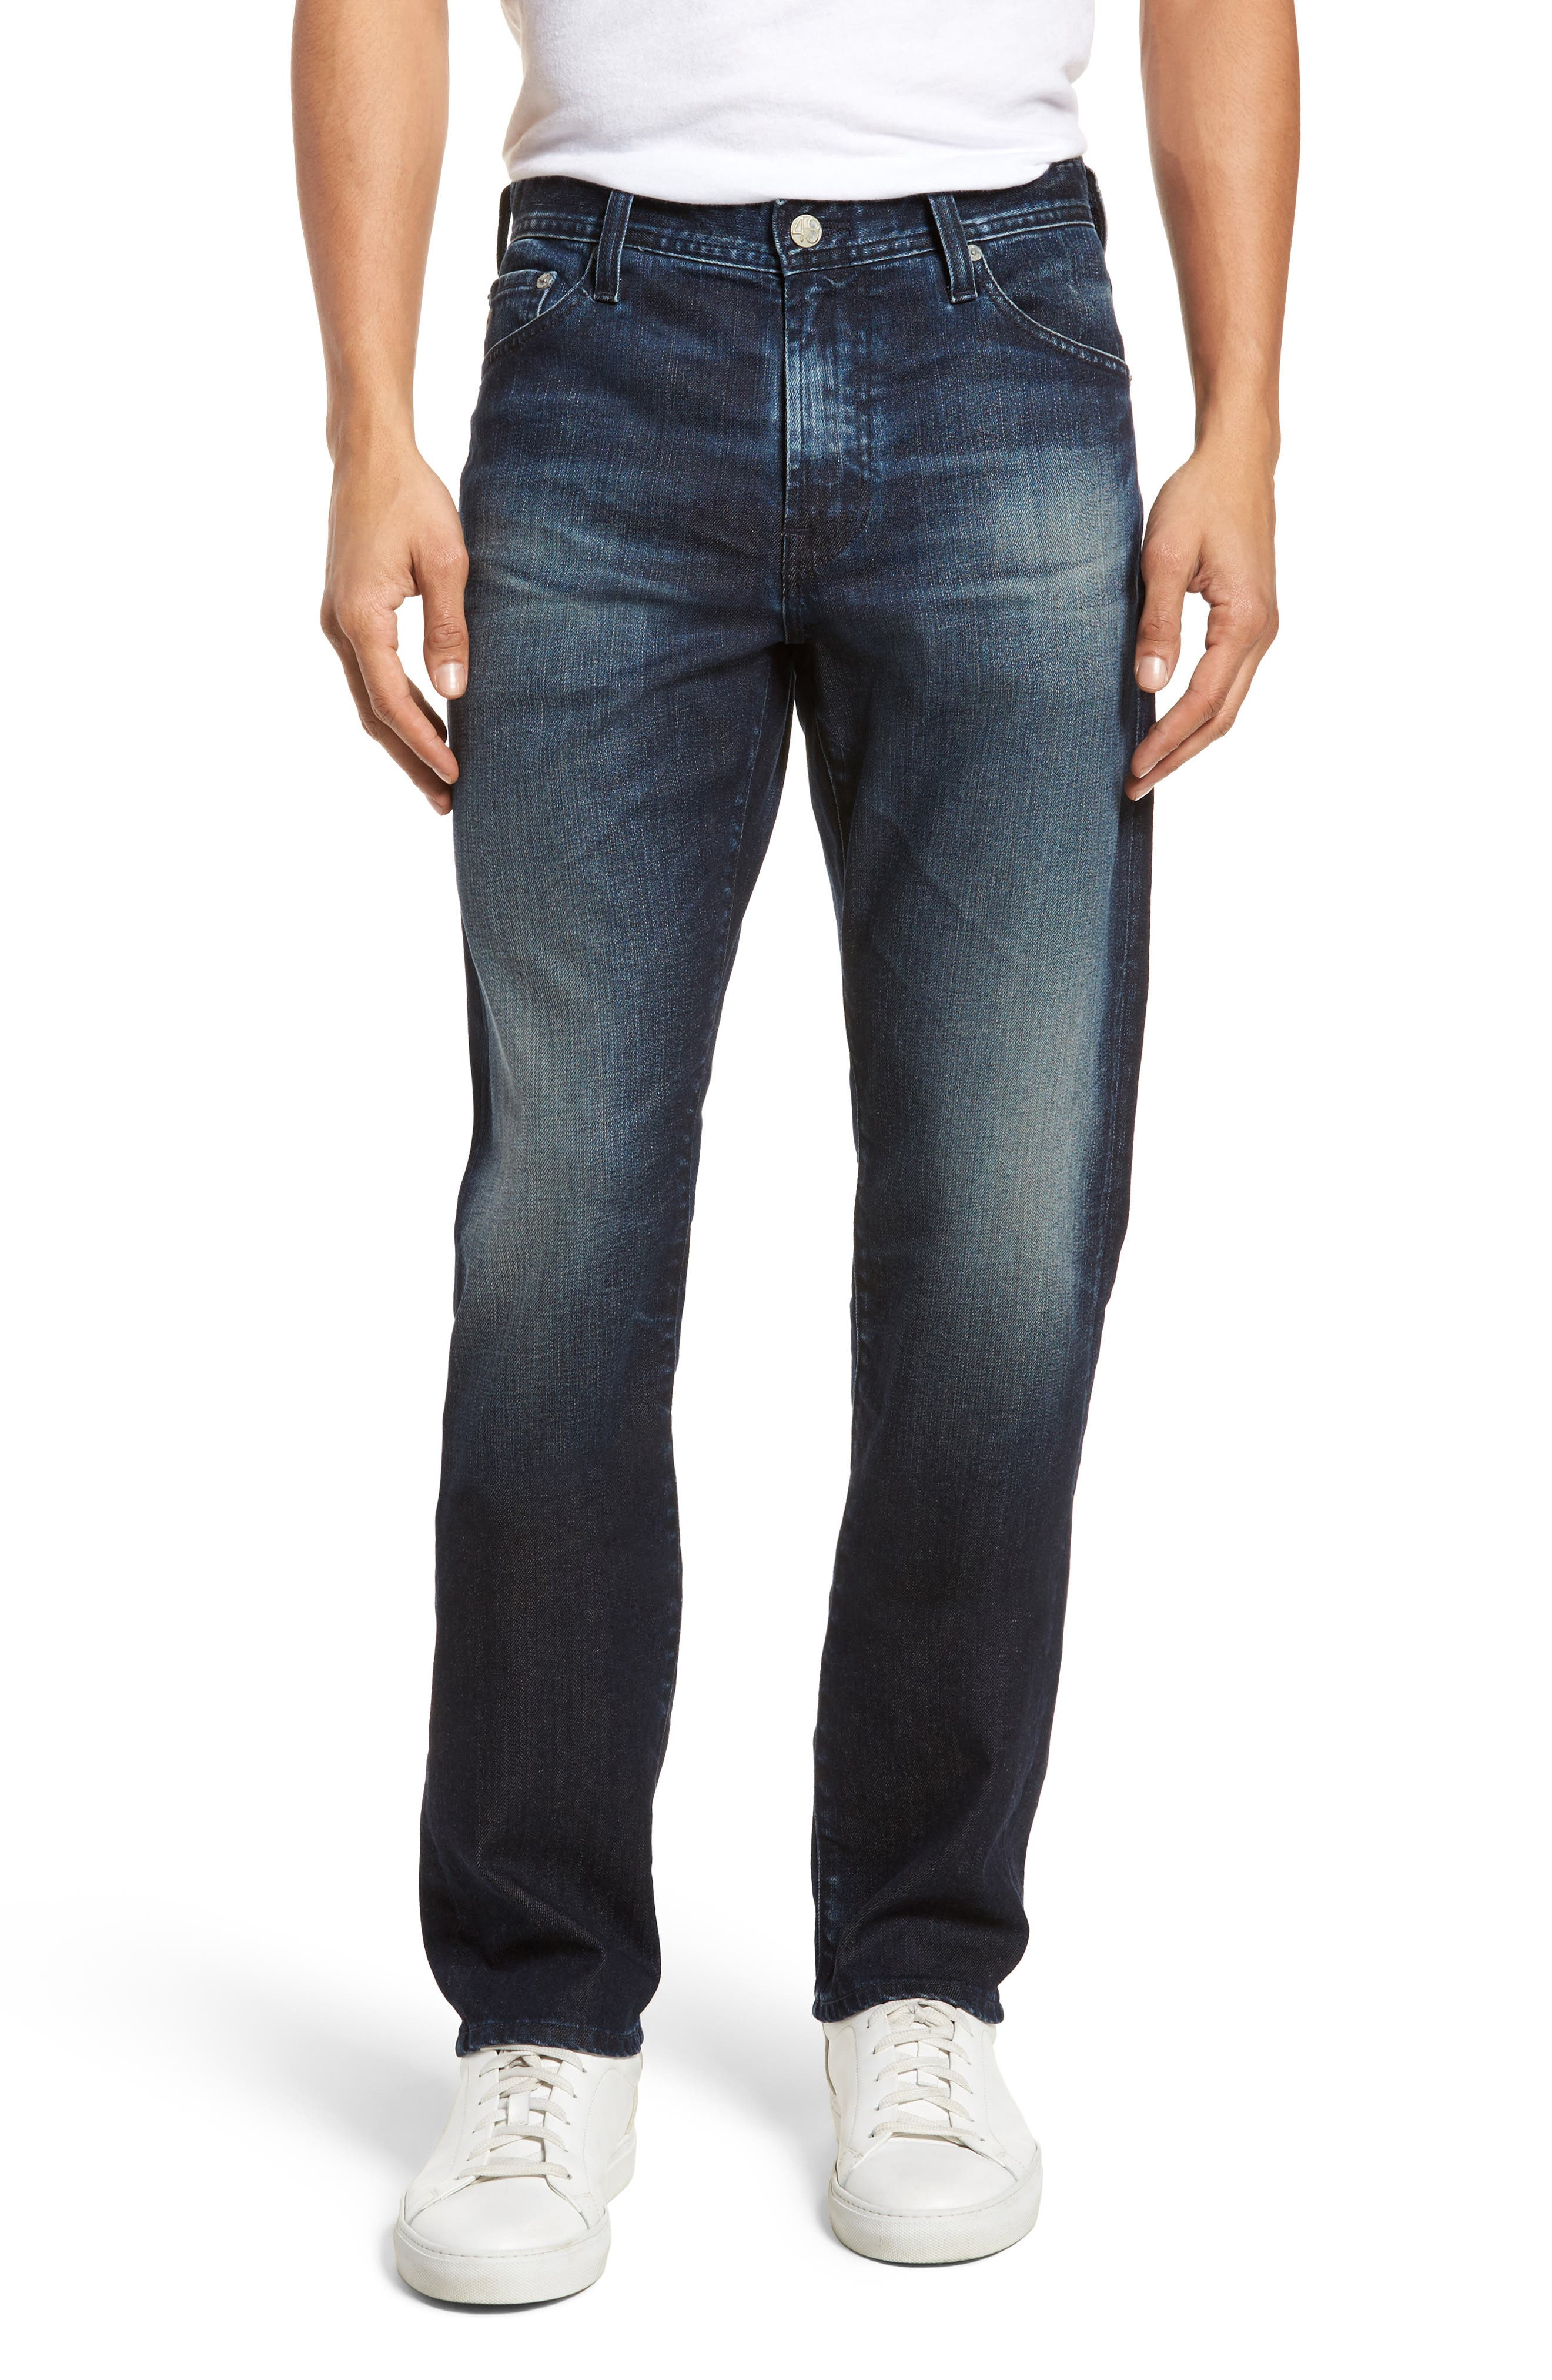 Everett Slim Straight Fit Jeans,                             Main thumbnail 1, color,                             3 Years Trentwood